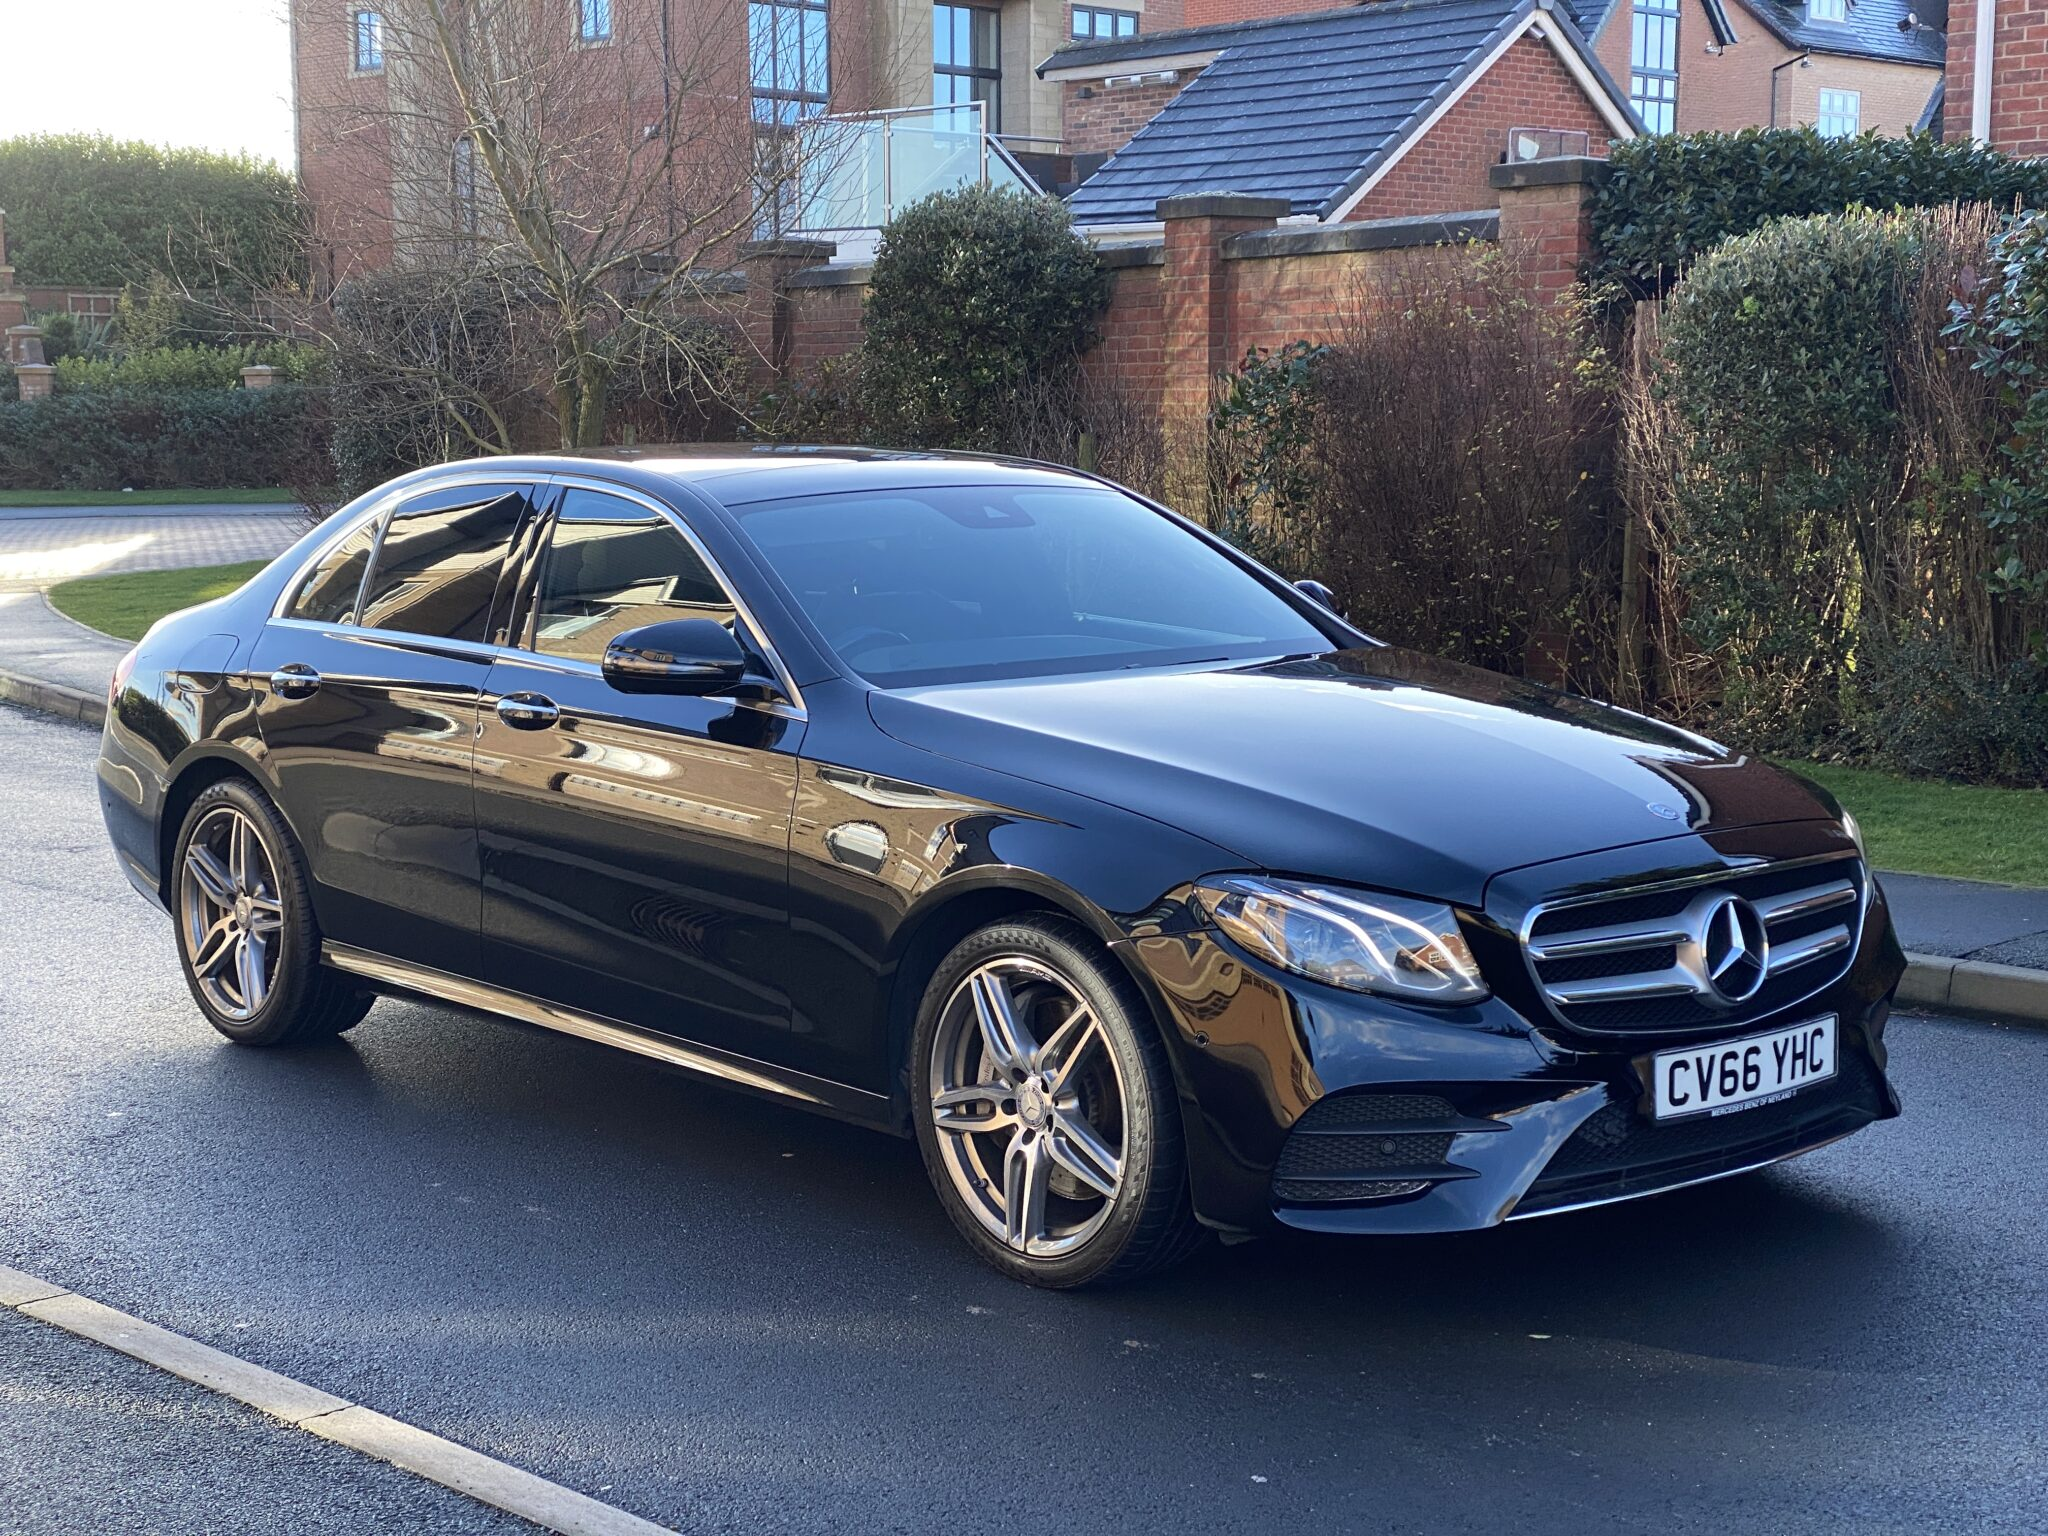 2016 66 MERCEDES BENZ E350D V6 AMG LINE PREMIUM 7 G TRONIC SALOON Nappa Leather Widescreen Dash Pan Roof